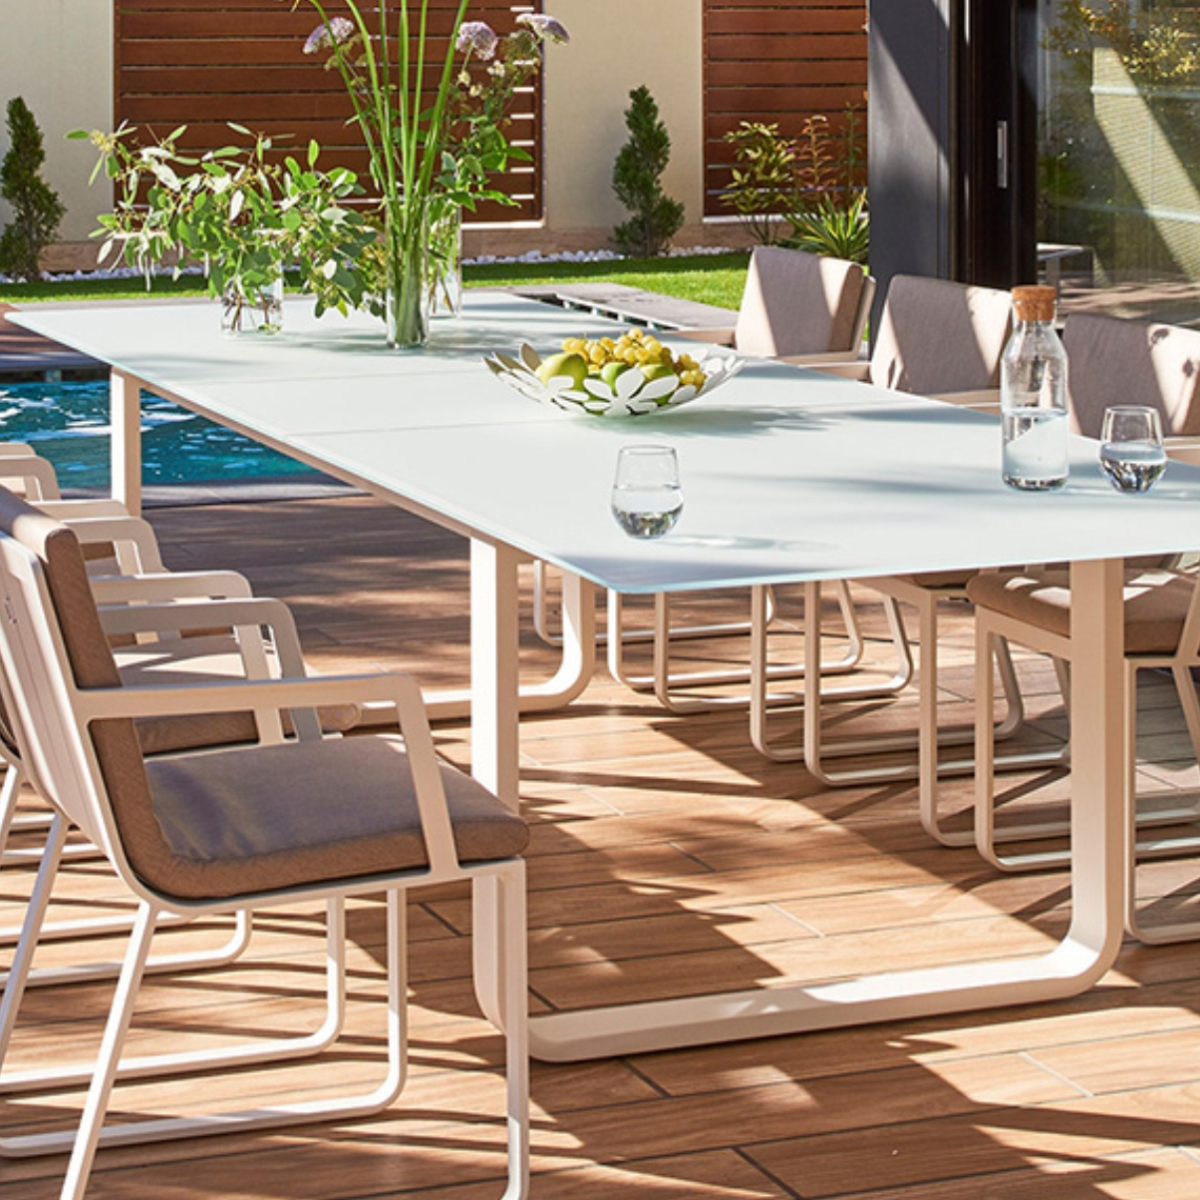 Grande table de jardin en verre zendart outdoor zendart for Grande table design